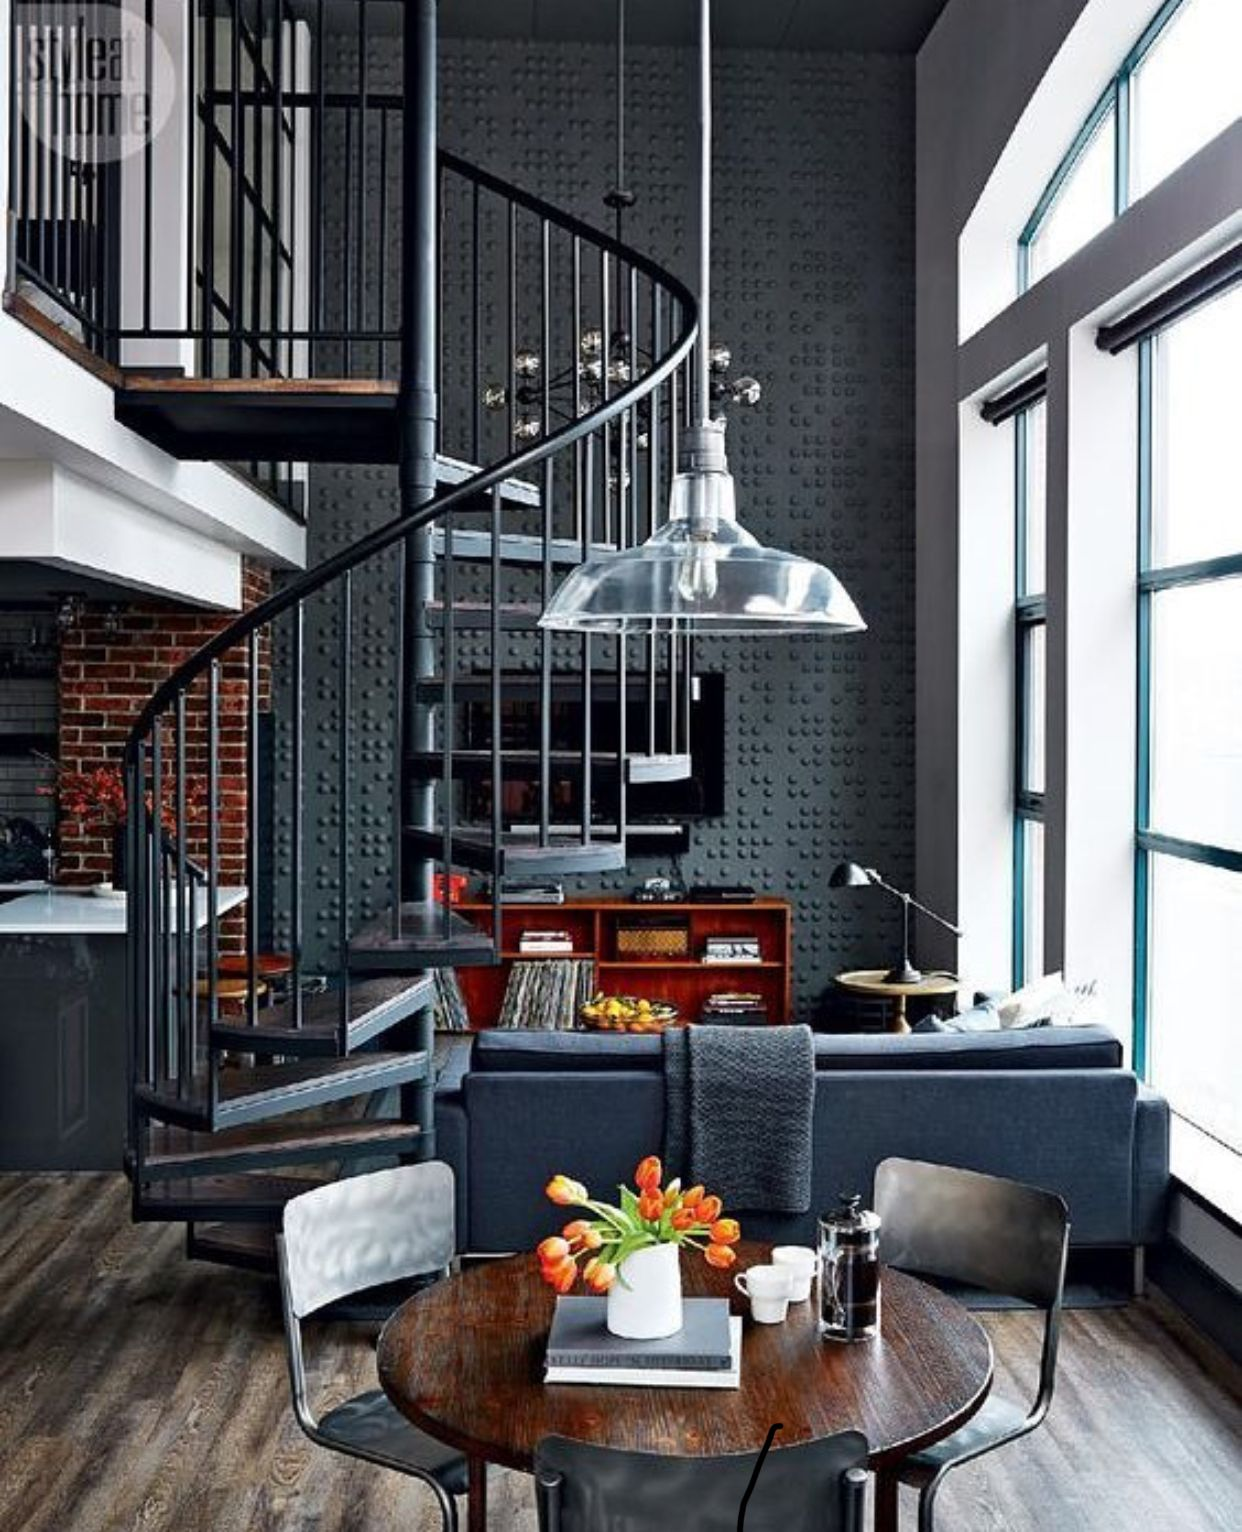 dark brick and tile loft space with